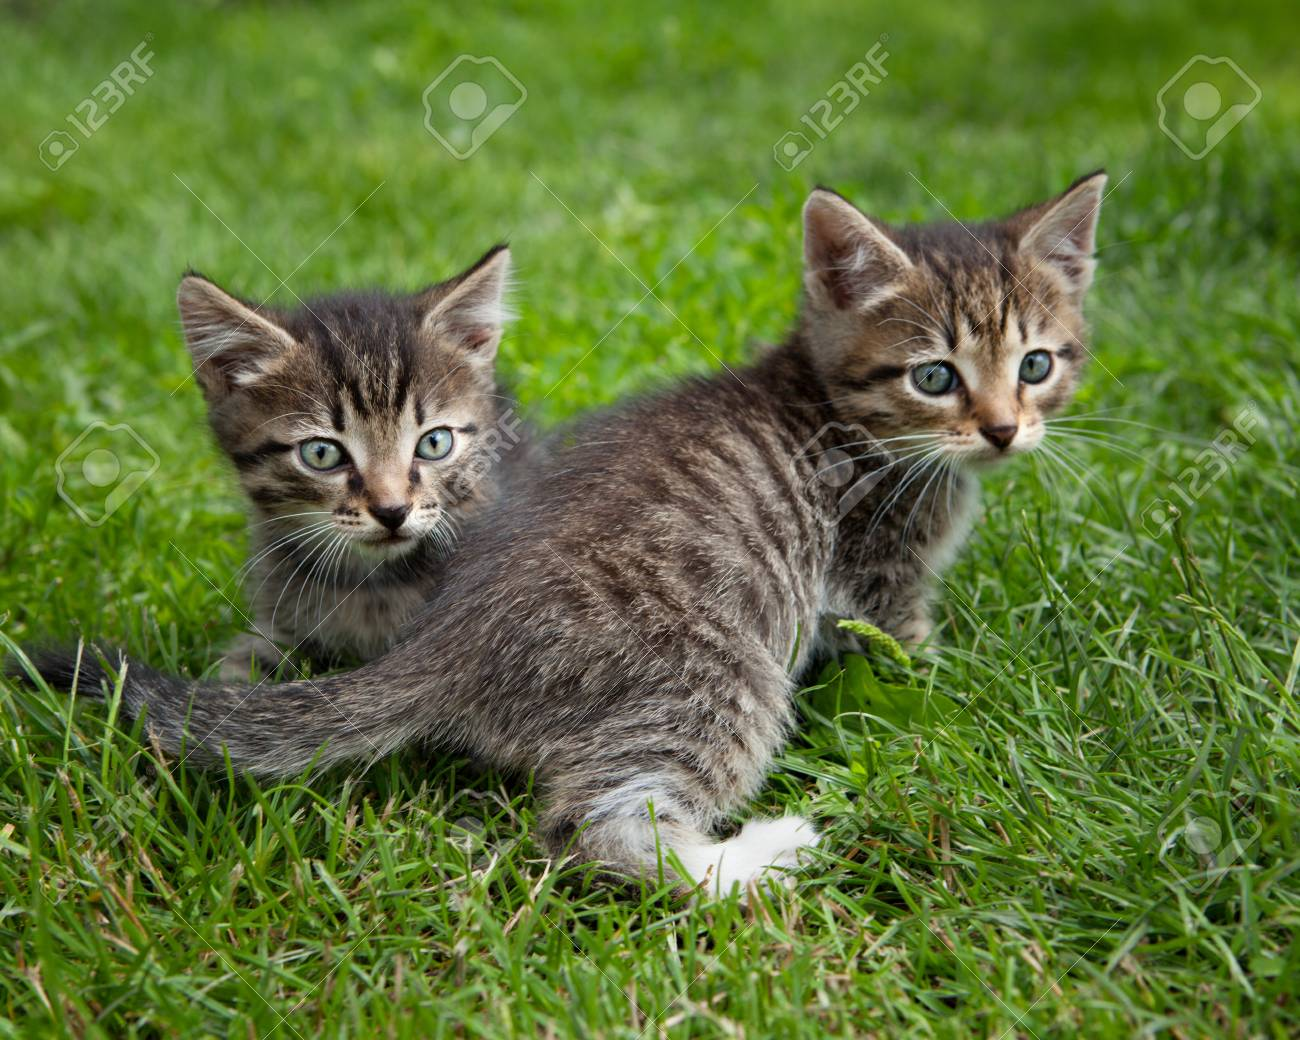 Stock Photo Two Brown Cute Kittens Playing Outside In A Green Grass